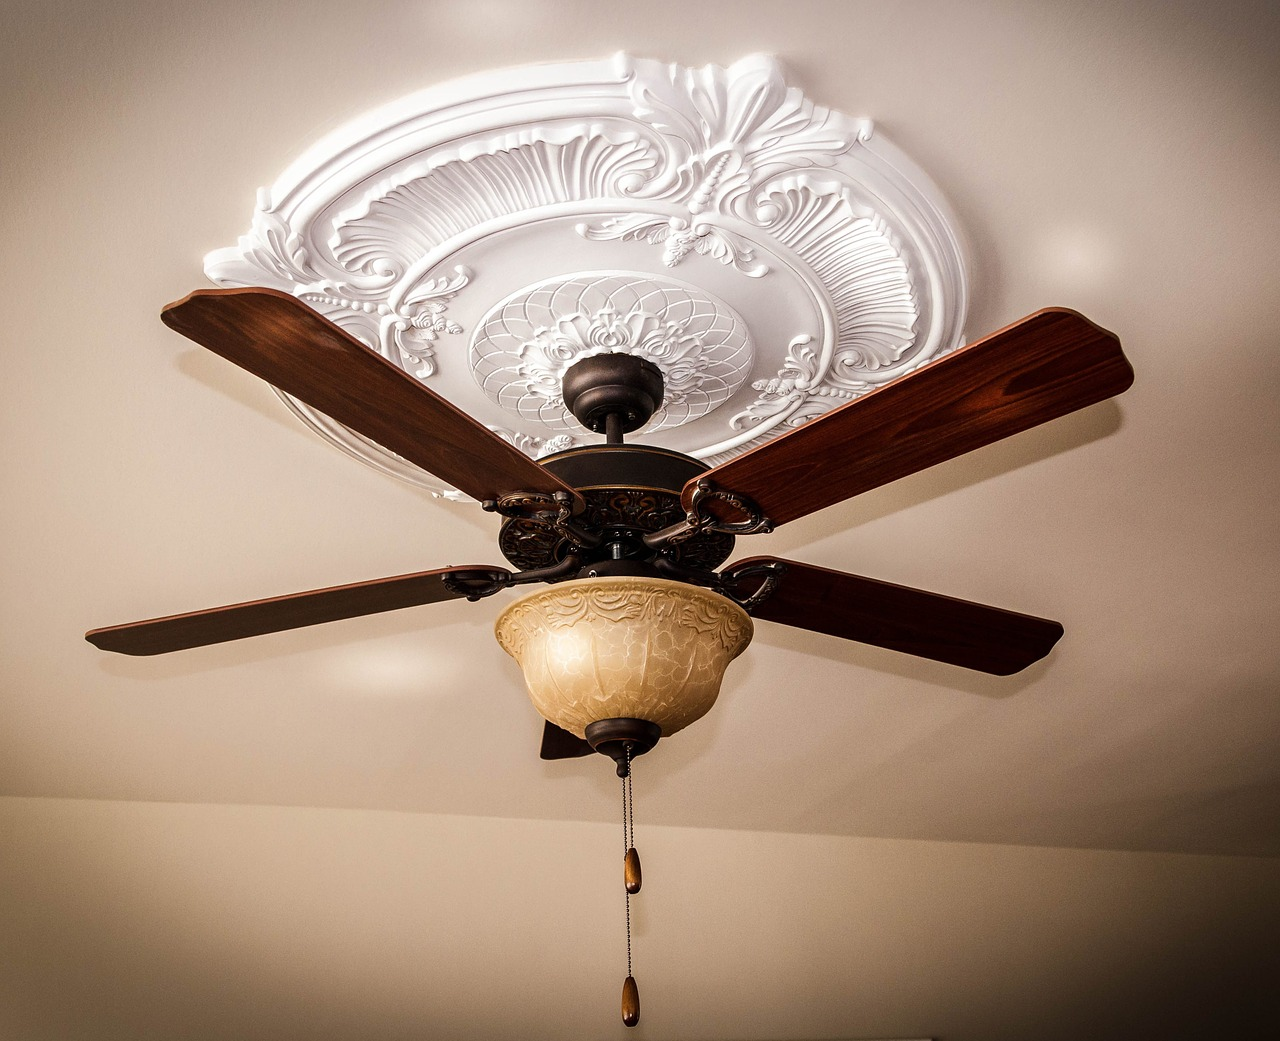 Ceiling Fan Light Bulbs: Things You Need But Are Not Available Easily